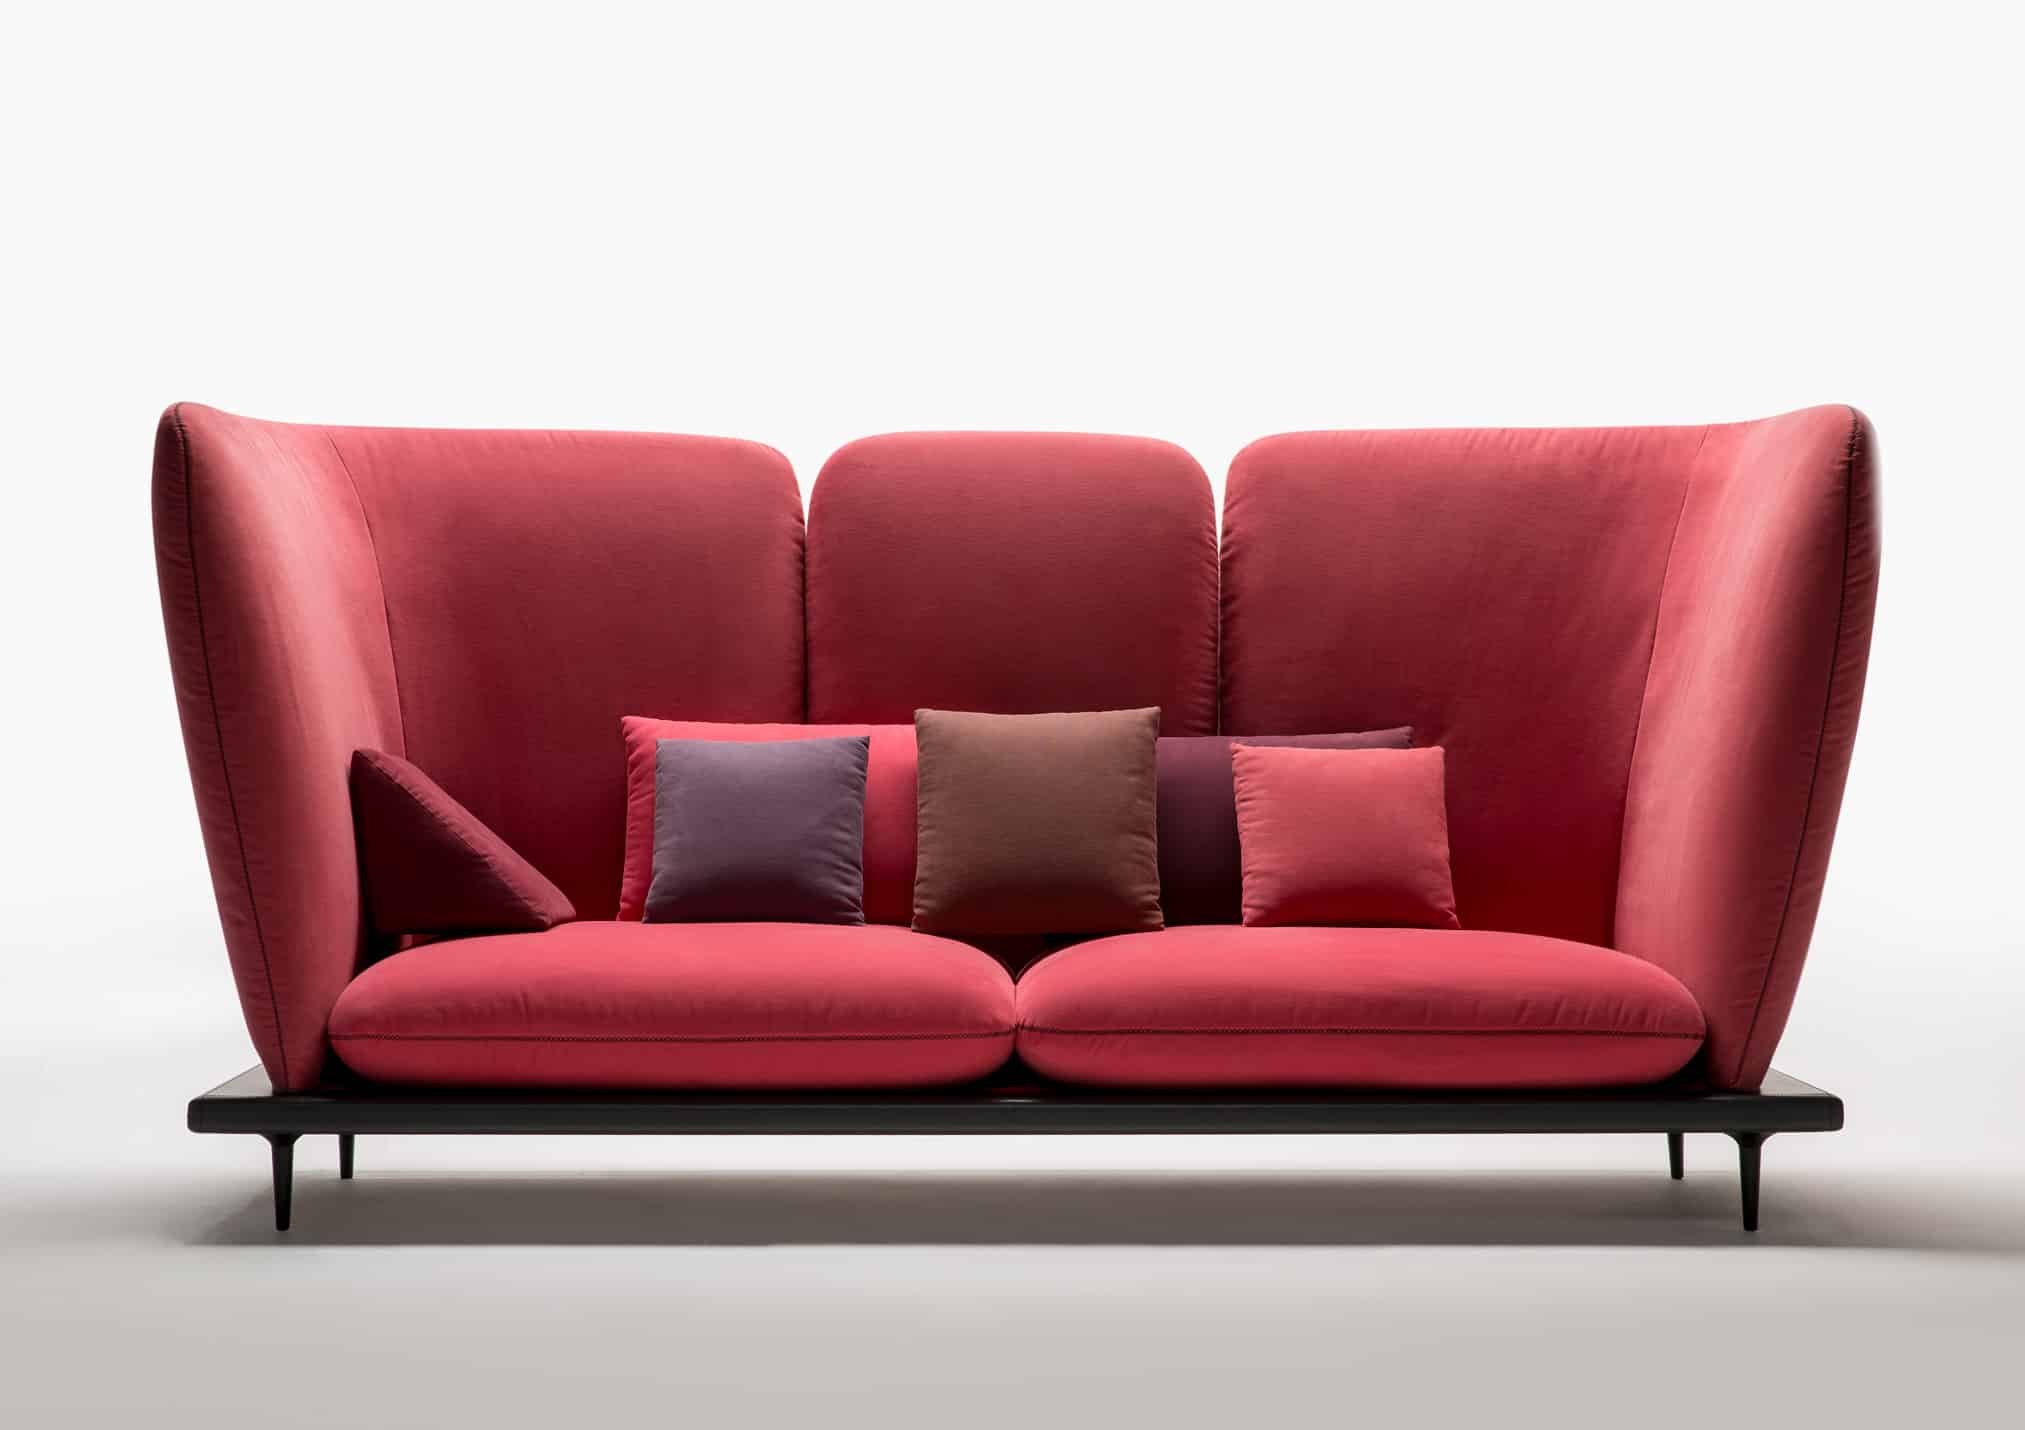 40 elegant modern sofas for cool living rooms for Interior designs sofa